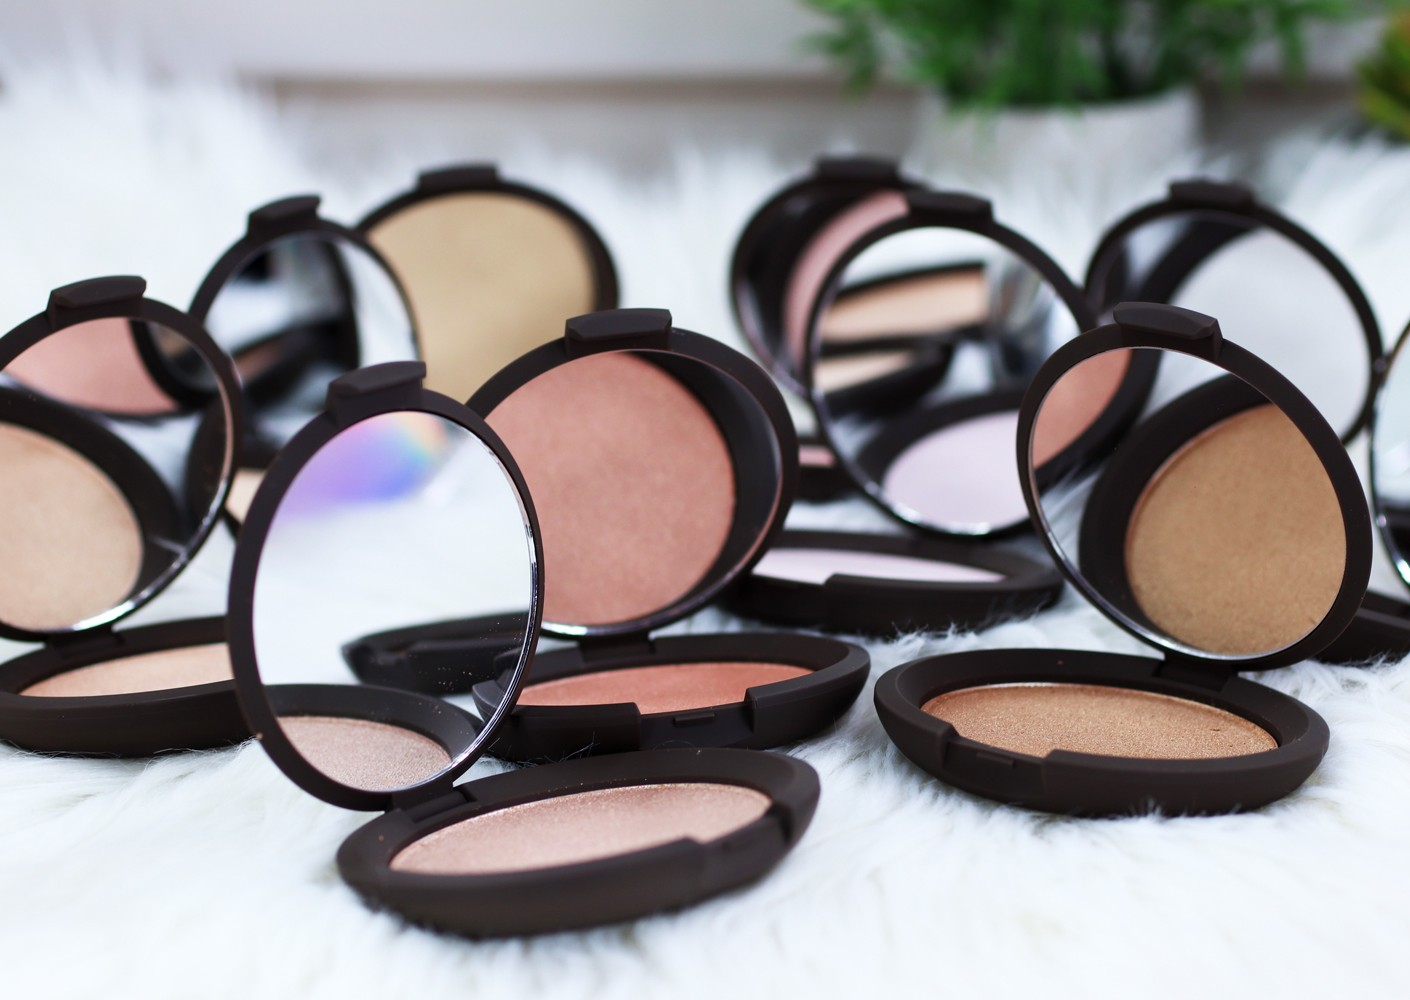 Becca Shimmering Skin Perfector Cruelty Free Highlighter Review and Swatches by Los Angeles Blogger, My Beauty Bunny